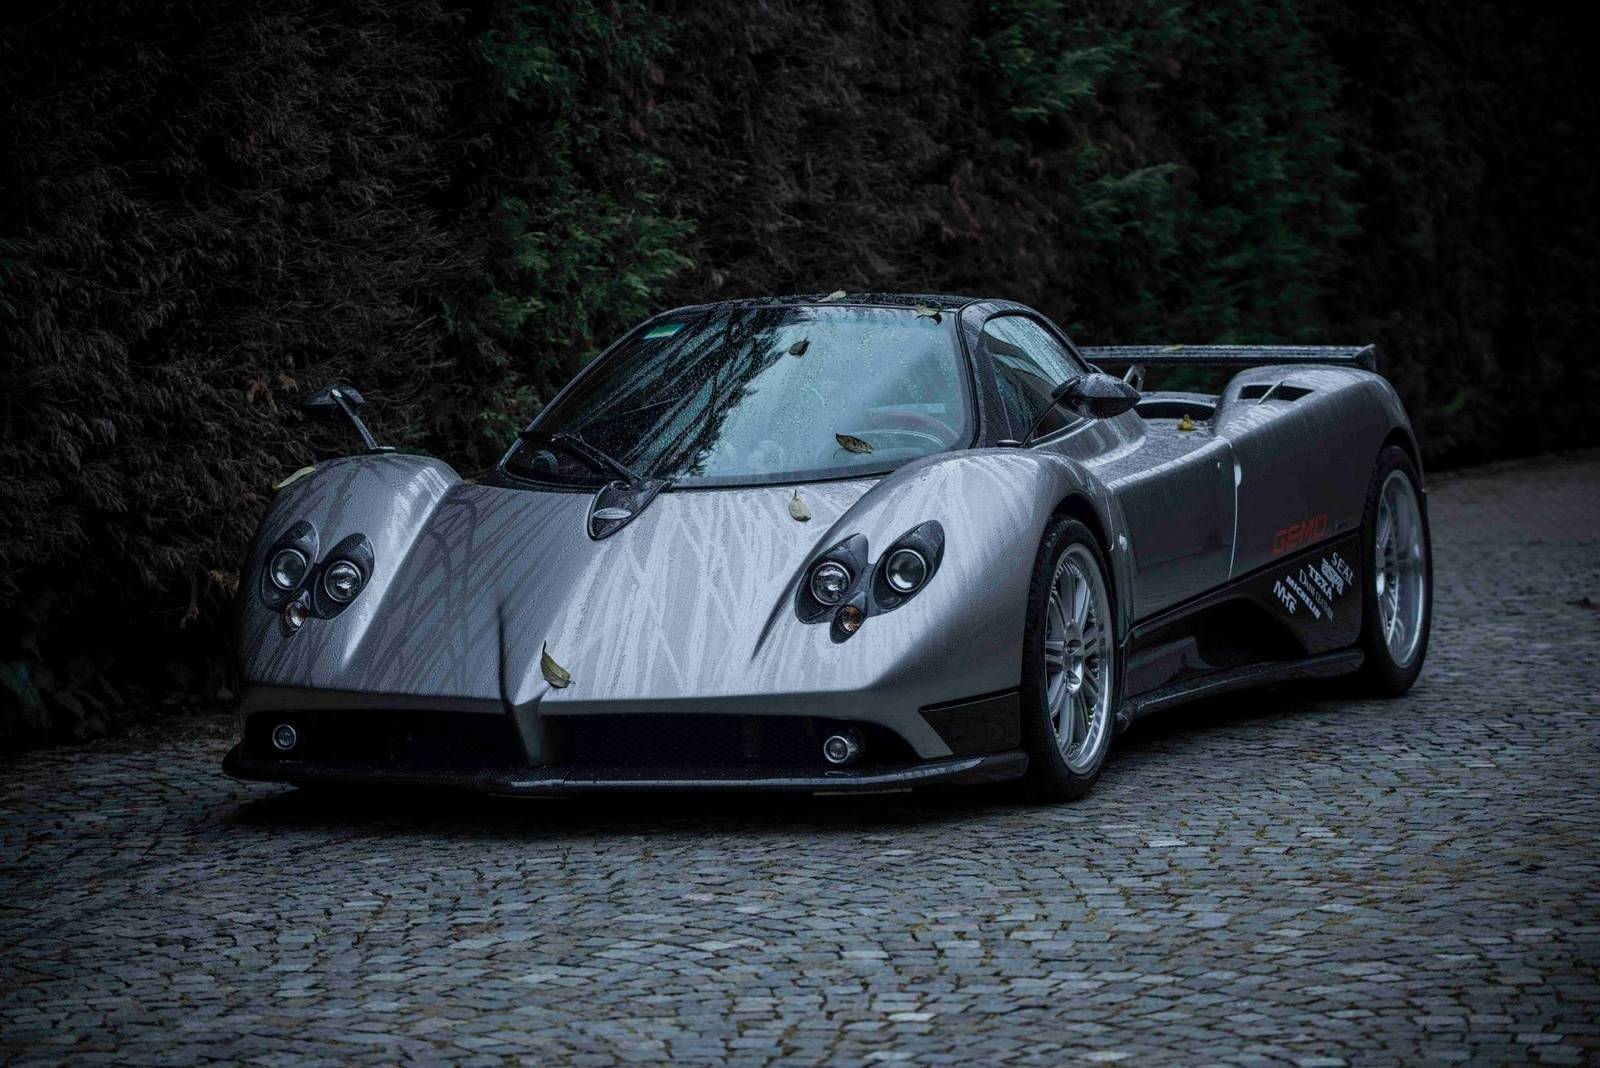 meet the pagani zonda f chassis n 1 gtspirit. Black Bedroom Furniture Sets. Home Design Ideas